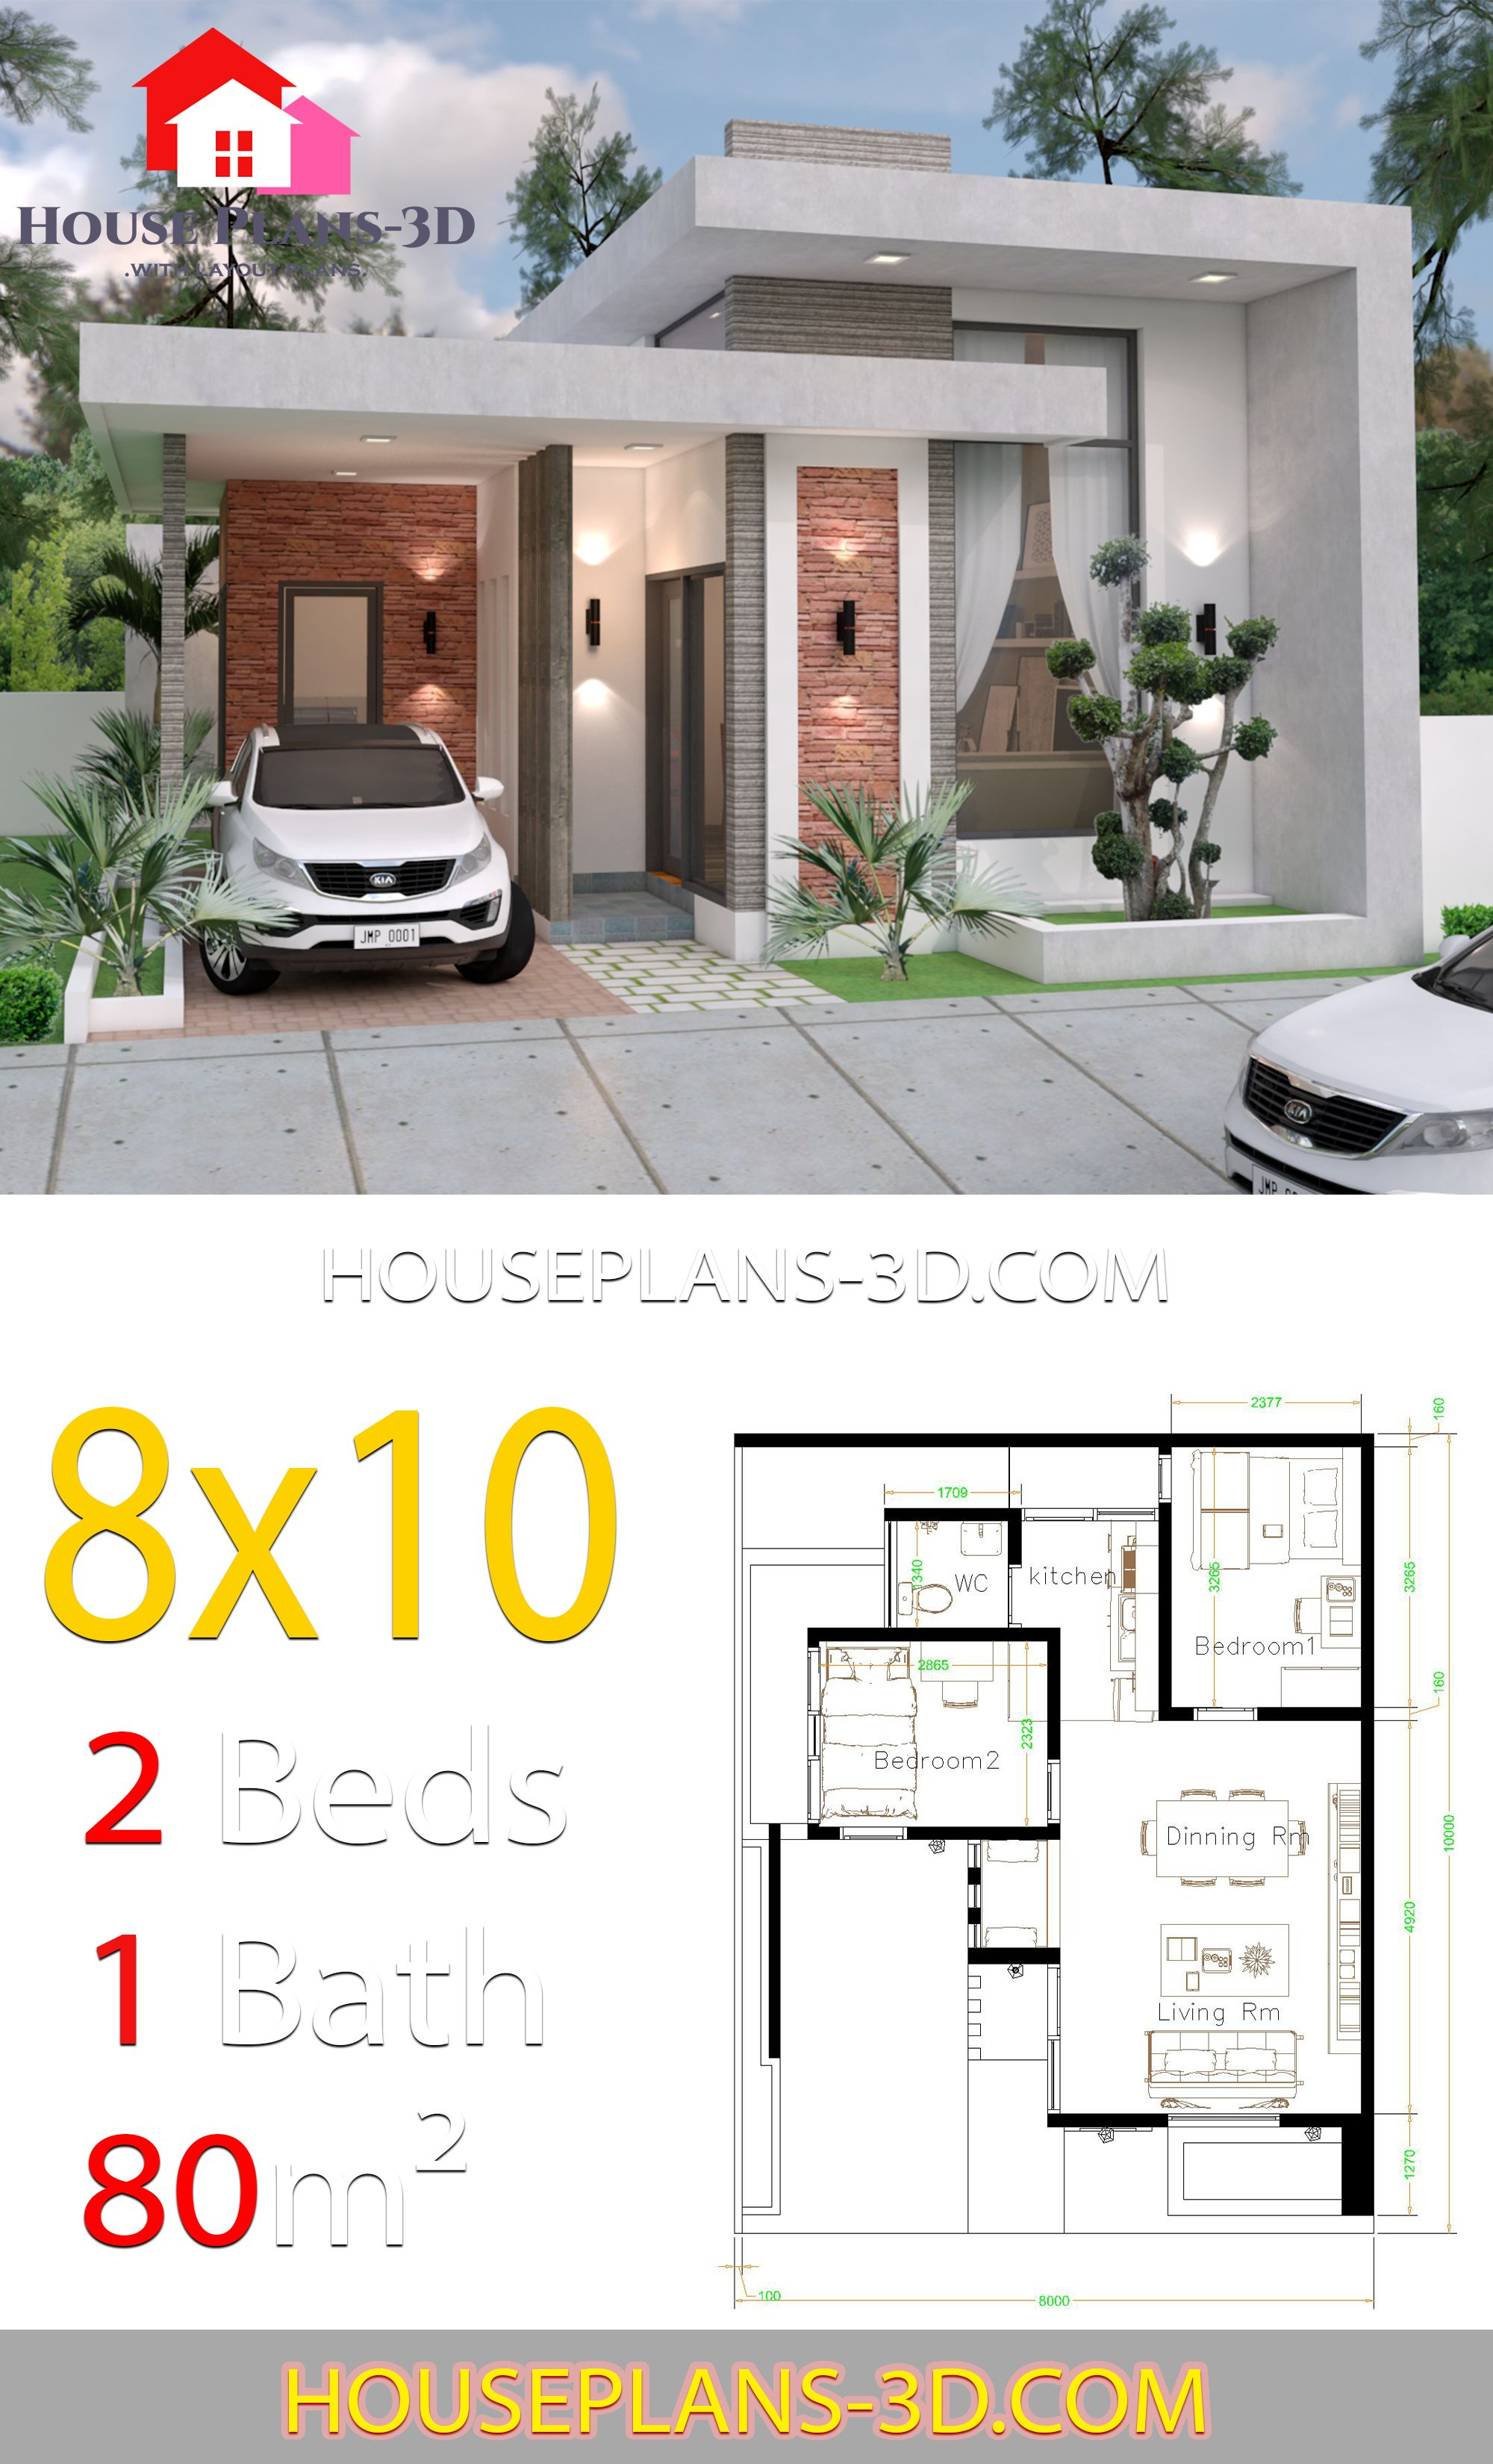 House Design 8x10 With 2 Bedrooms Terrace Roof House Plans 3d Rumah Indah Arsitektur Rumah Eksterior Modern